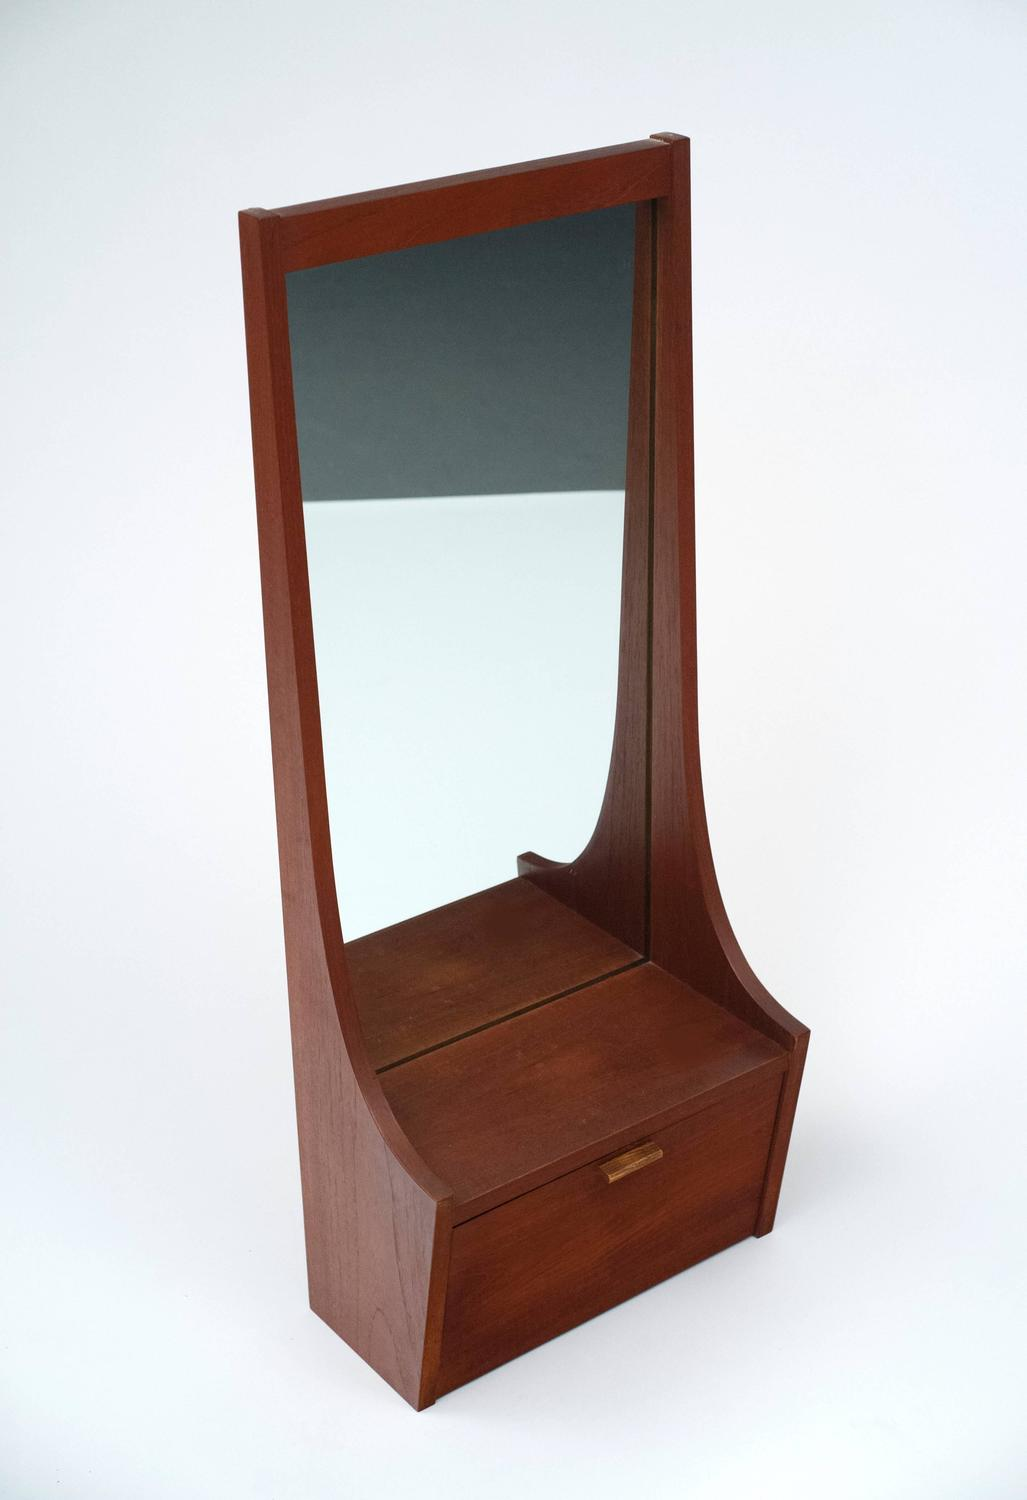 Foyer Mirror Cabinet : Mid century modern entryway mirror with shelf and cabinet